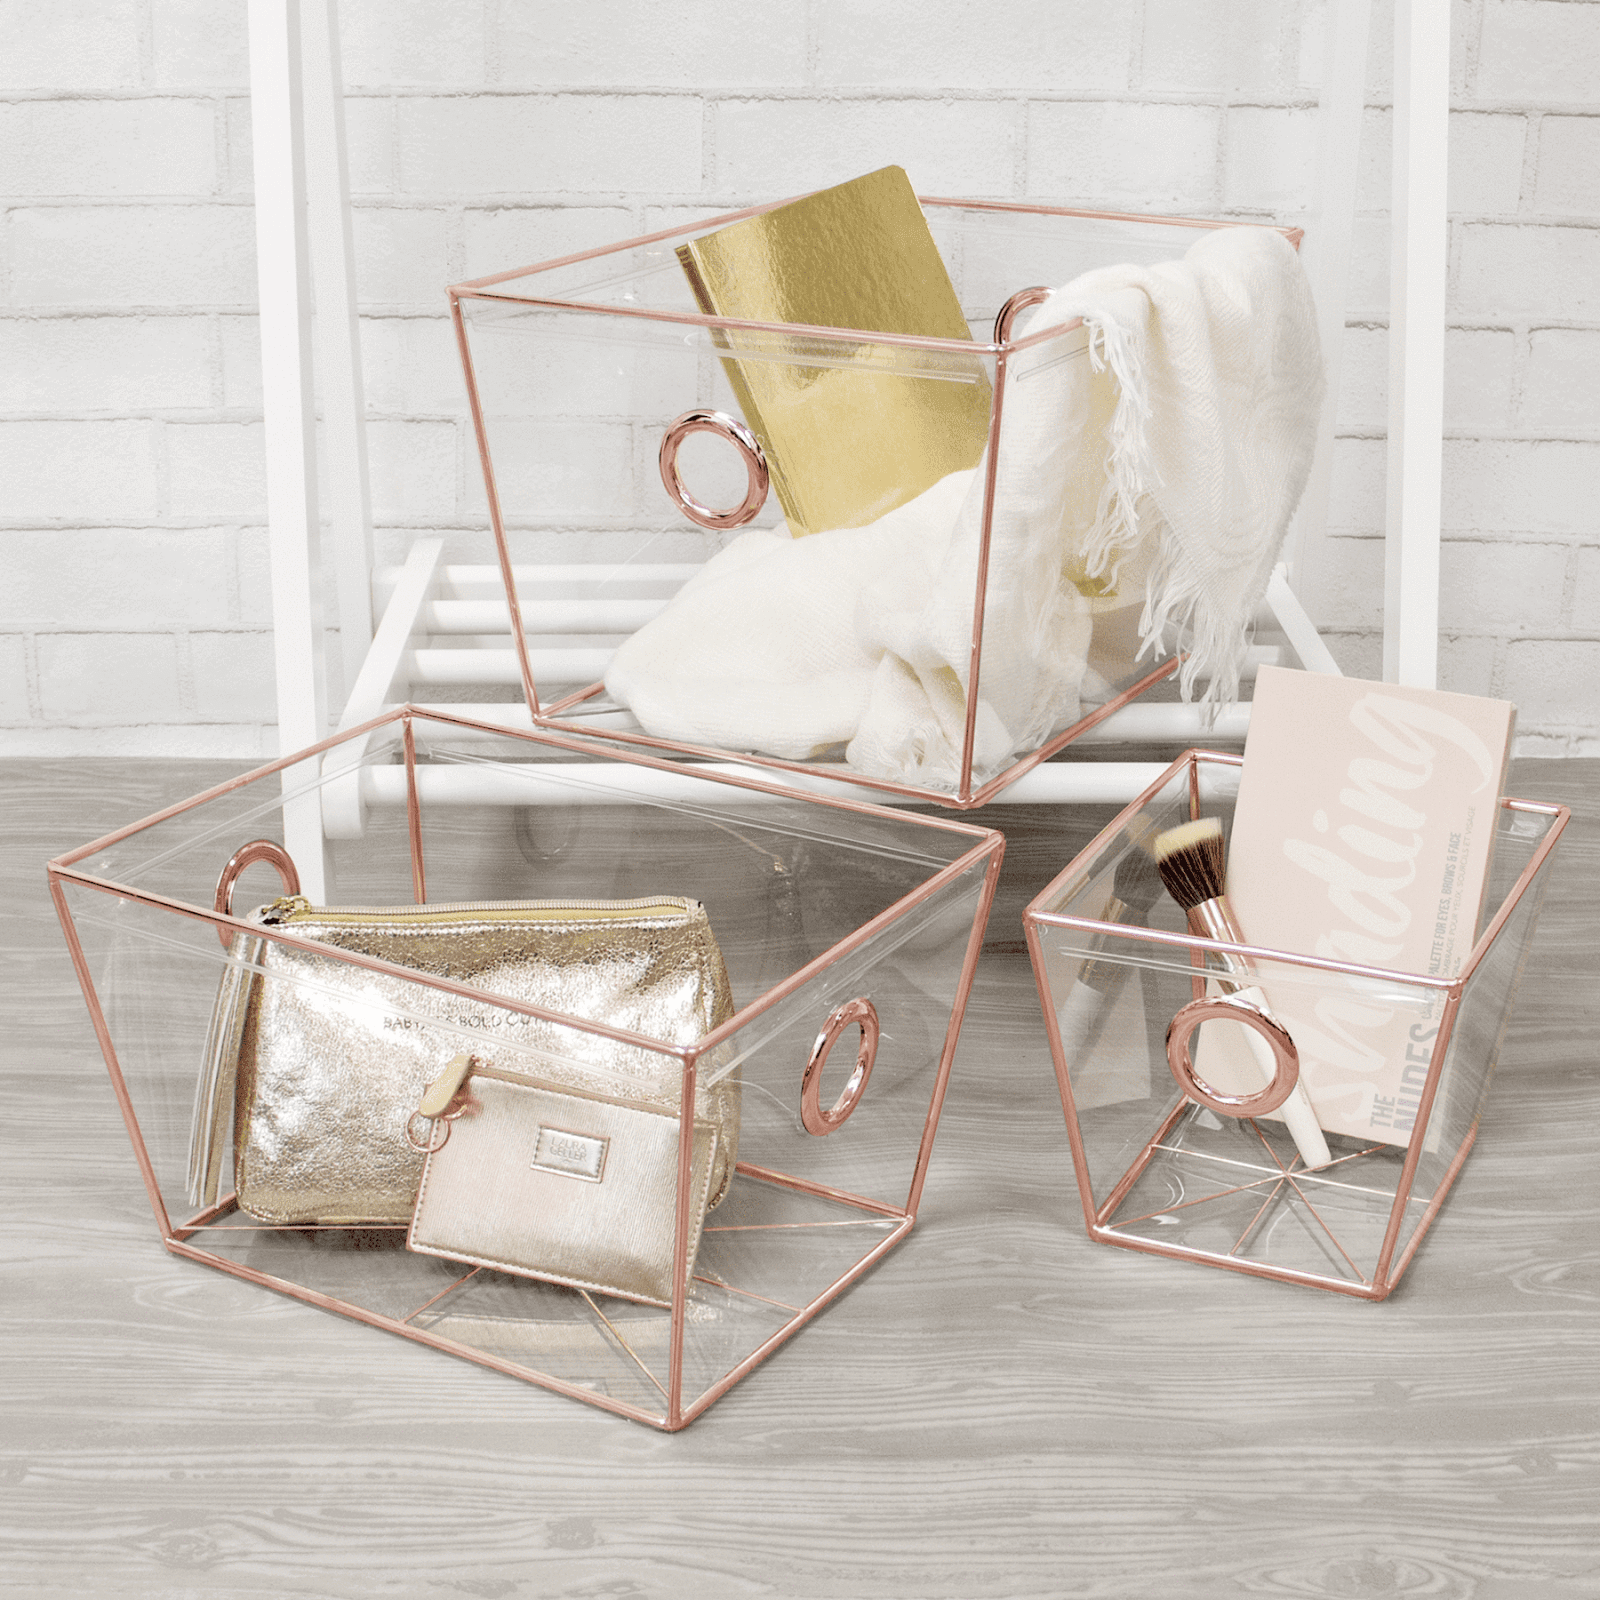 Why You Must Use decorative storage bins?